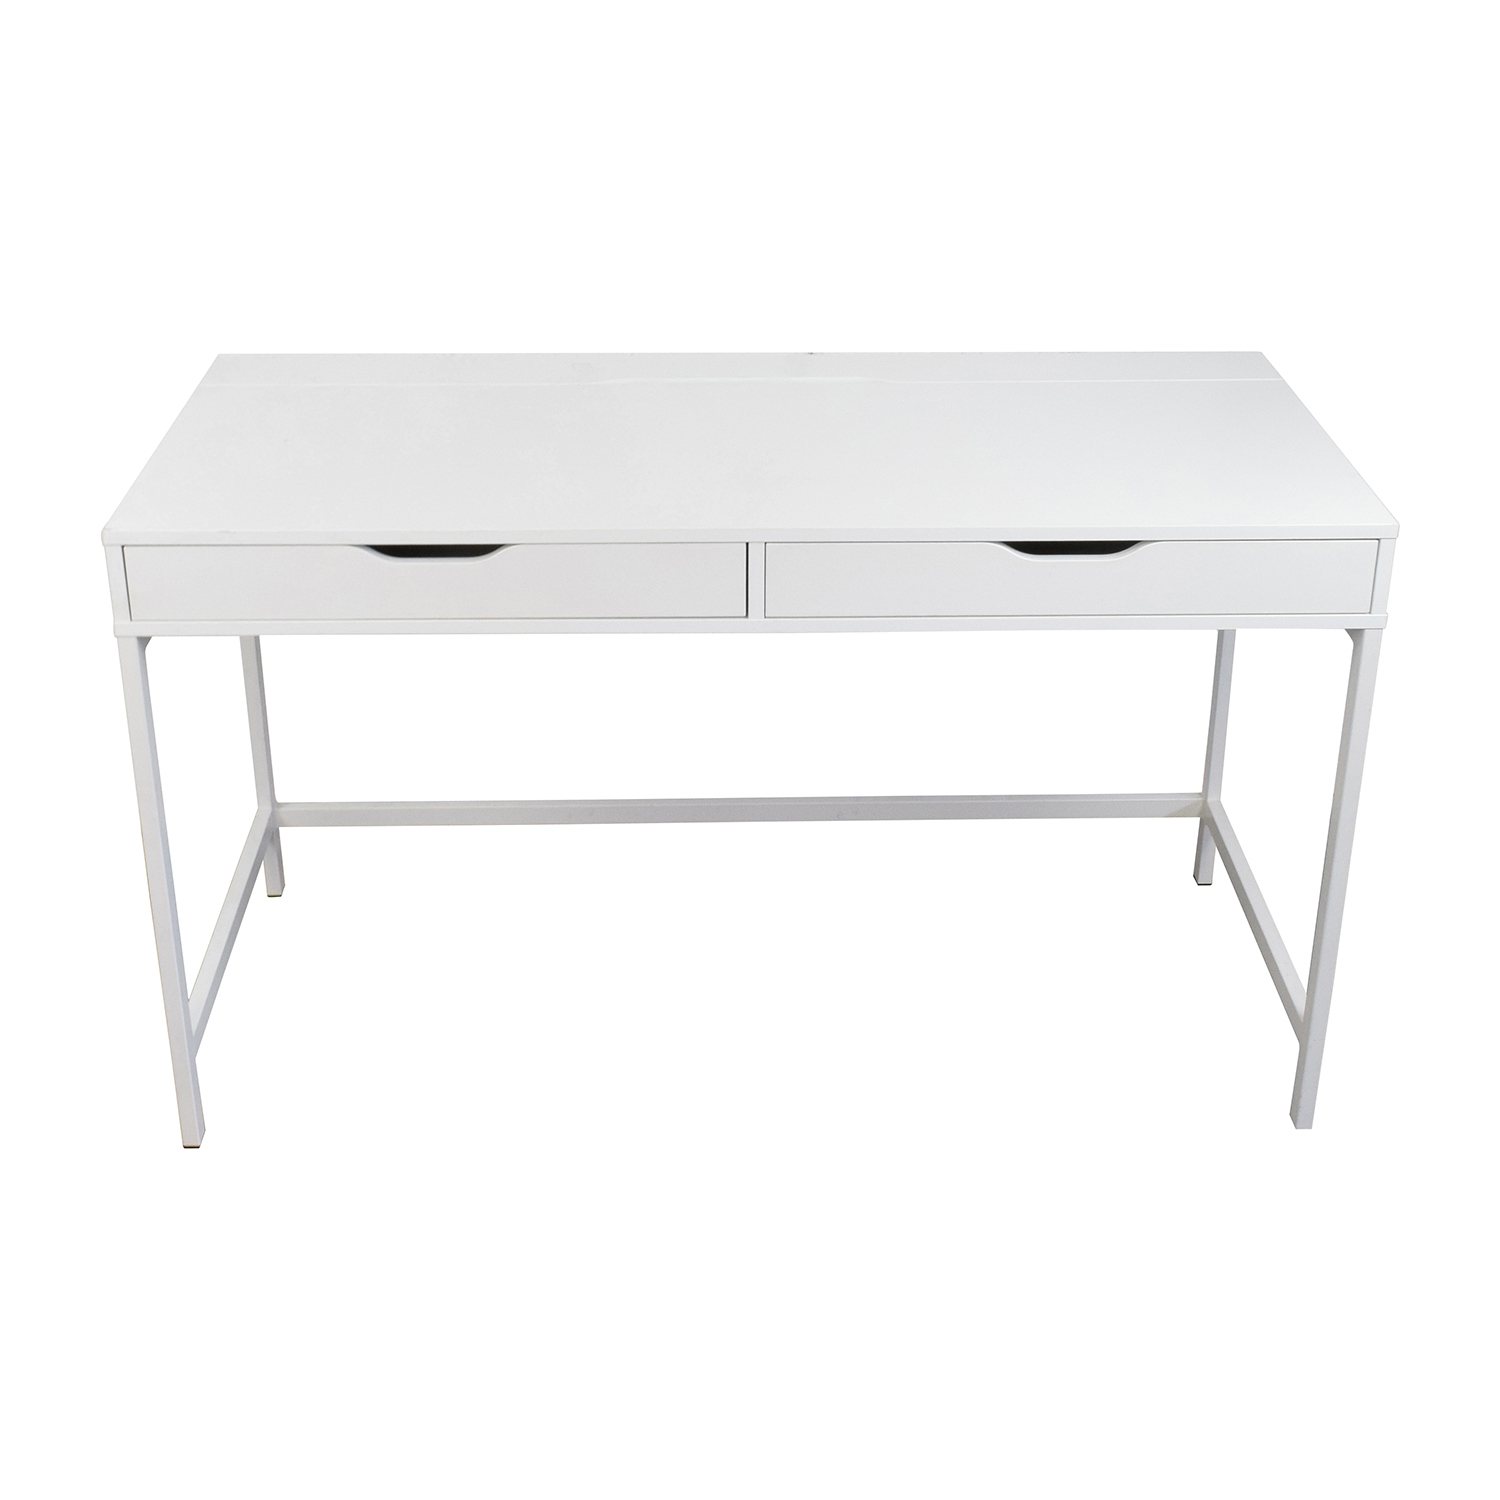 IKEA IKEA Alex White Desk for sale